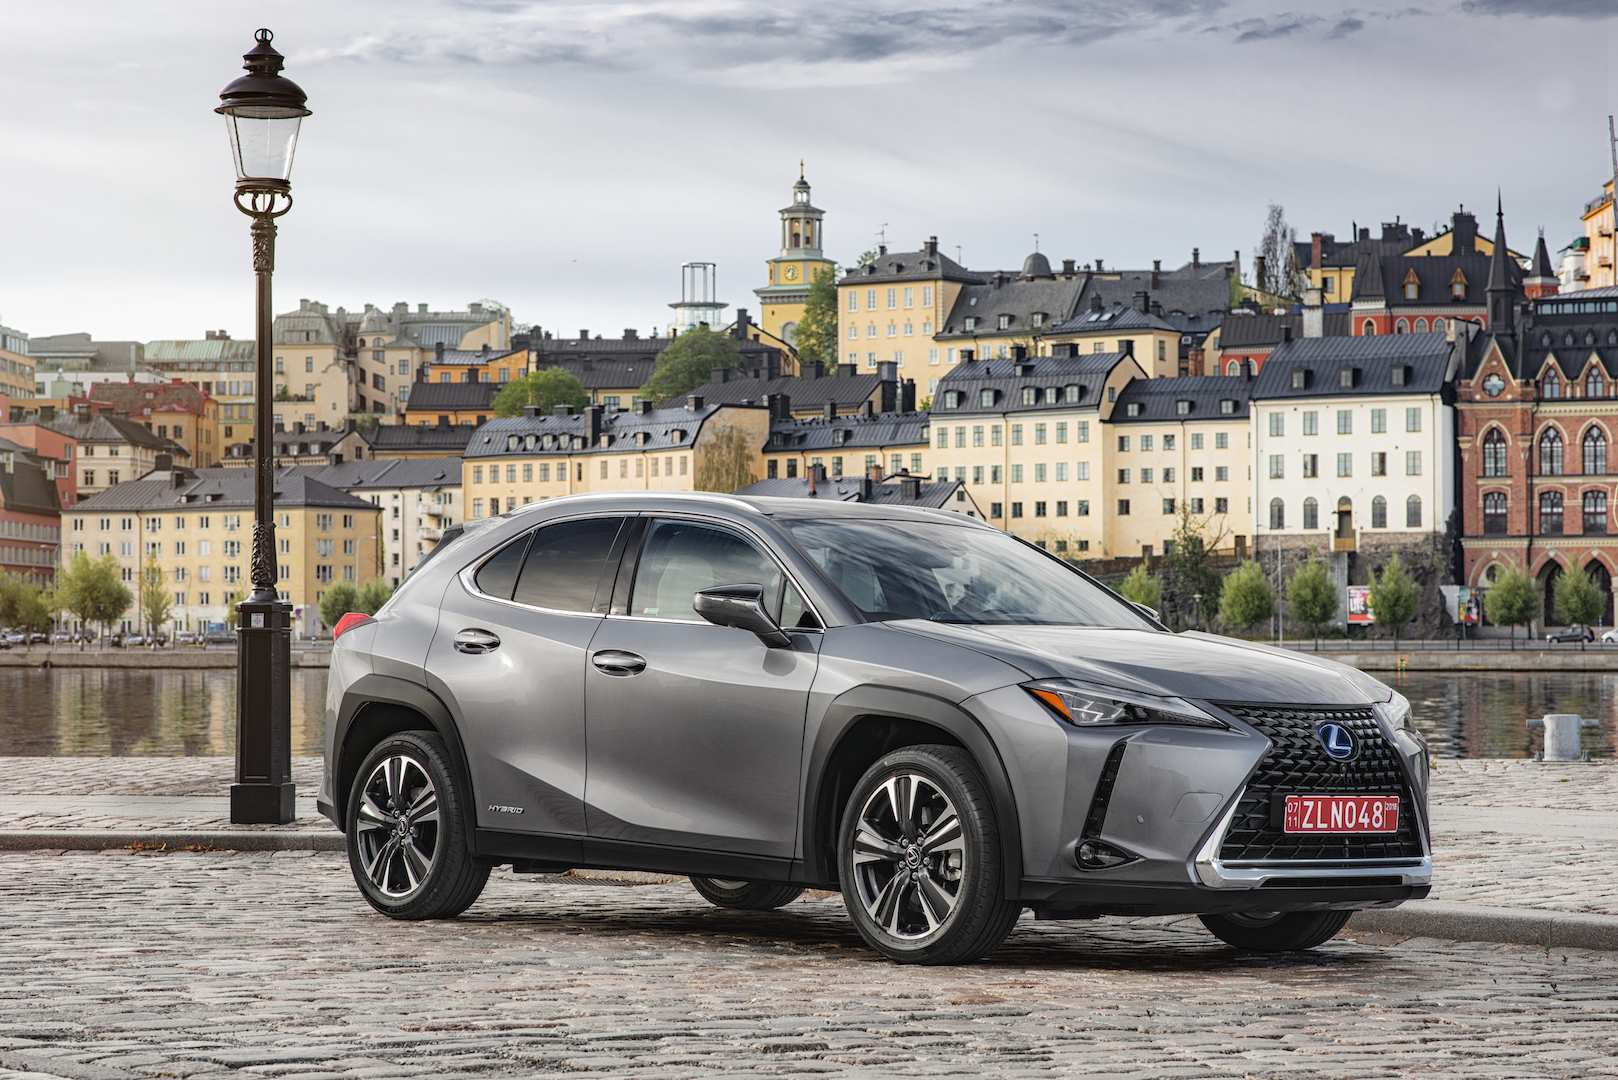 90 A 2020 Lexus Ux Hybrid Price Design And Review